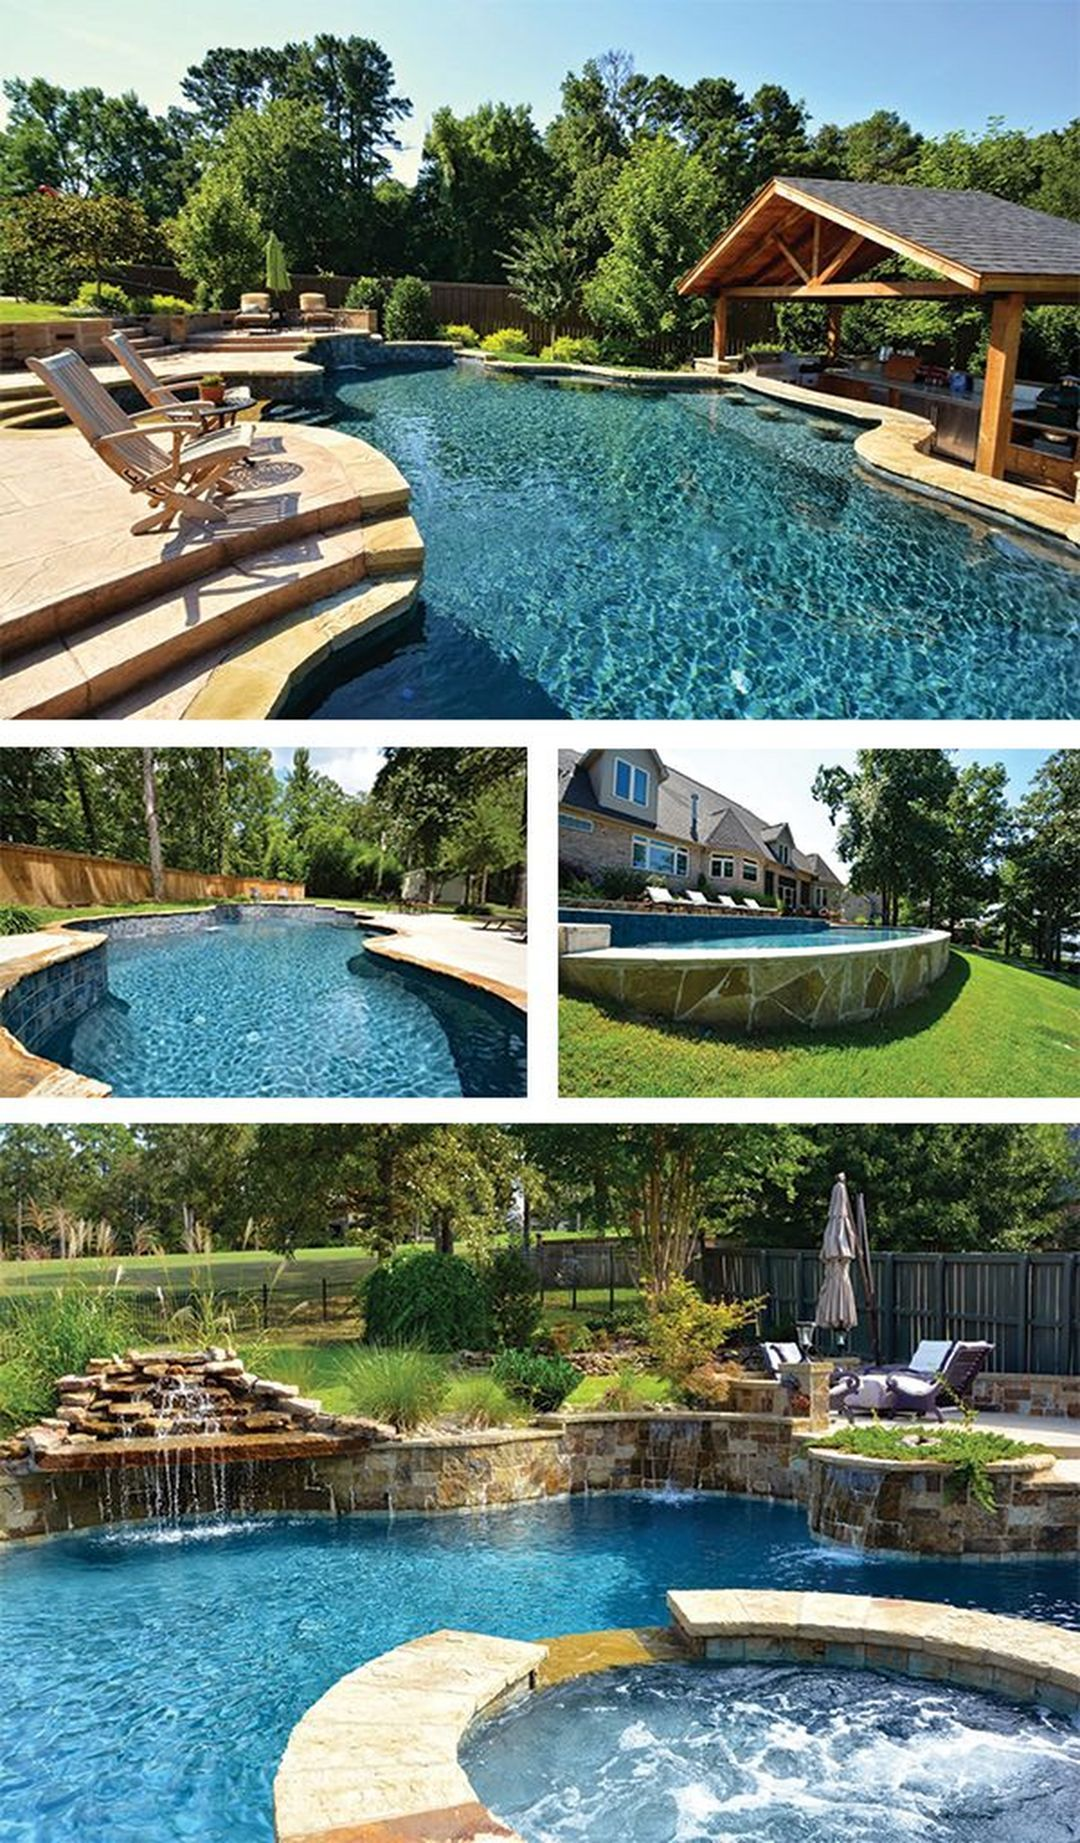 Make Your Backyard More Awesome With 30 Gorgeous Swimming Pool Design Ideas Swimming Pool Construction Swimming Pools Backyard Pool Houses